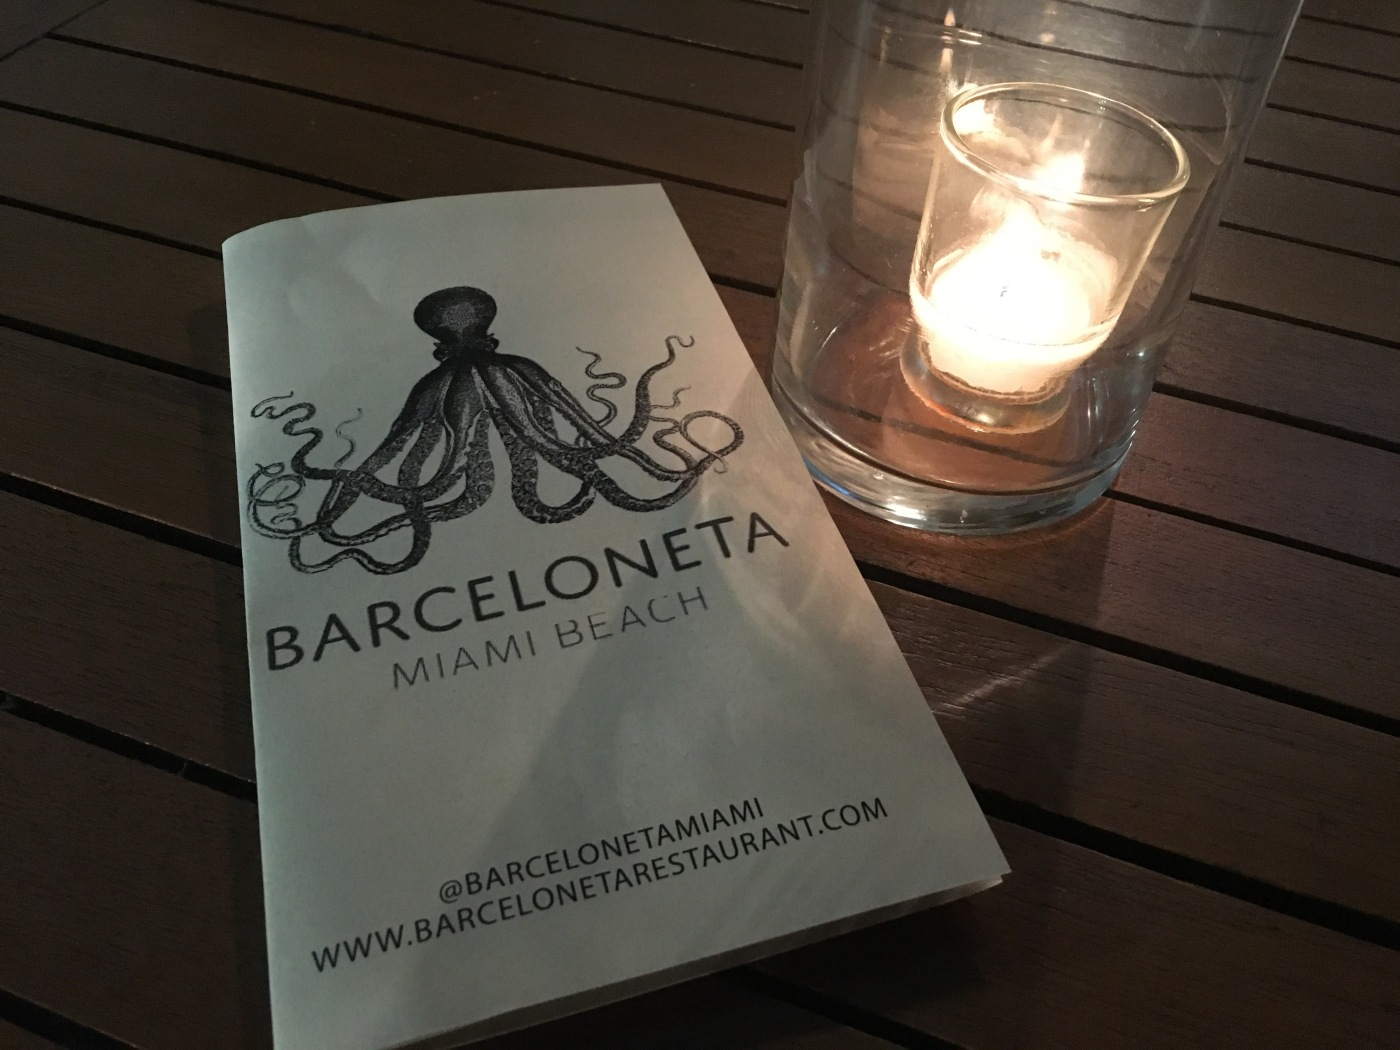 If an Octopus Has Eight Arms, Does that Mean it Can Hold More Tapas Plates Than a Human? Barceloneta in Miami, Florida